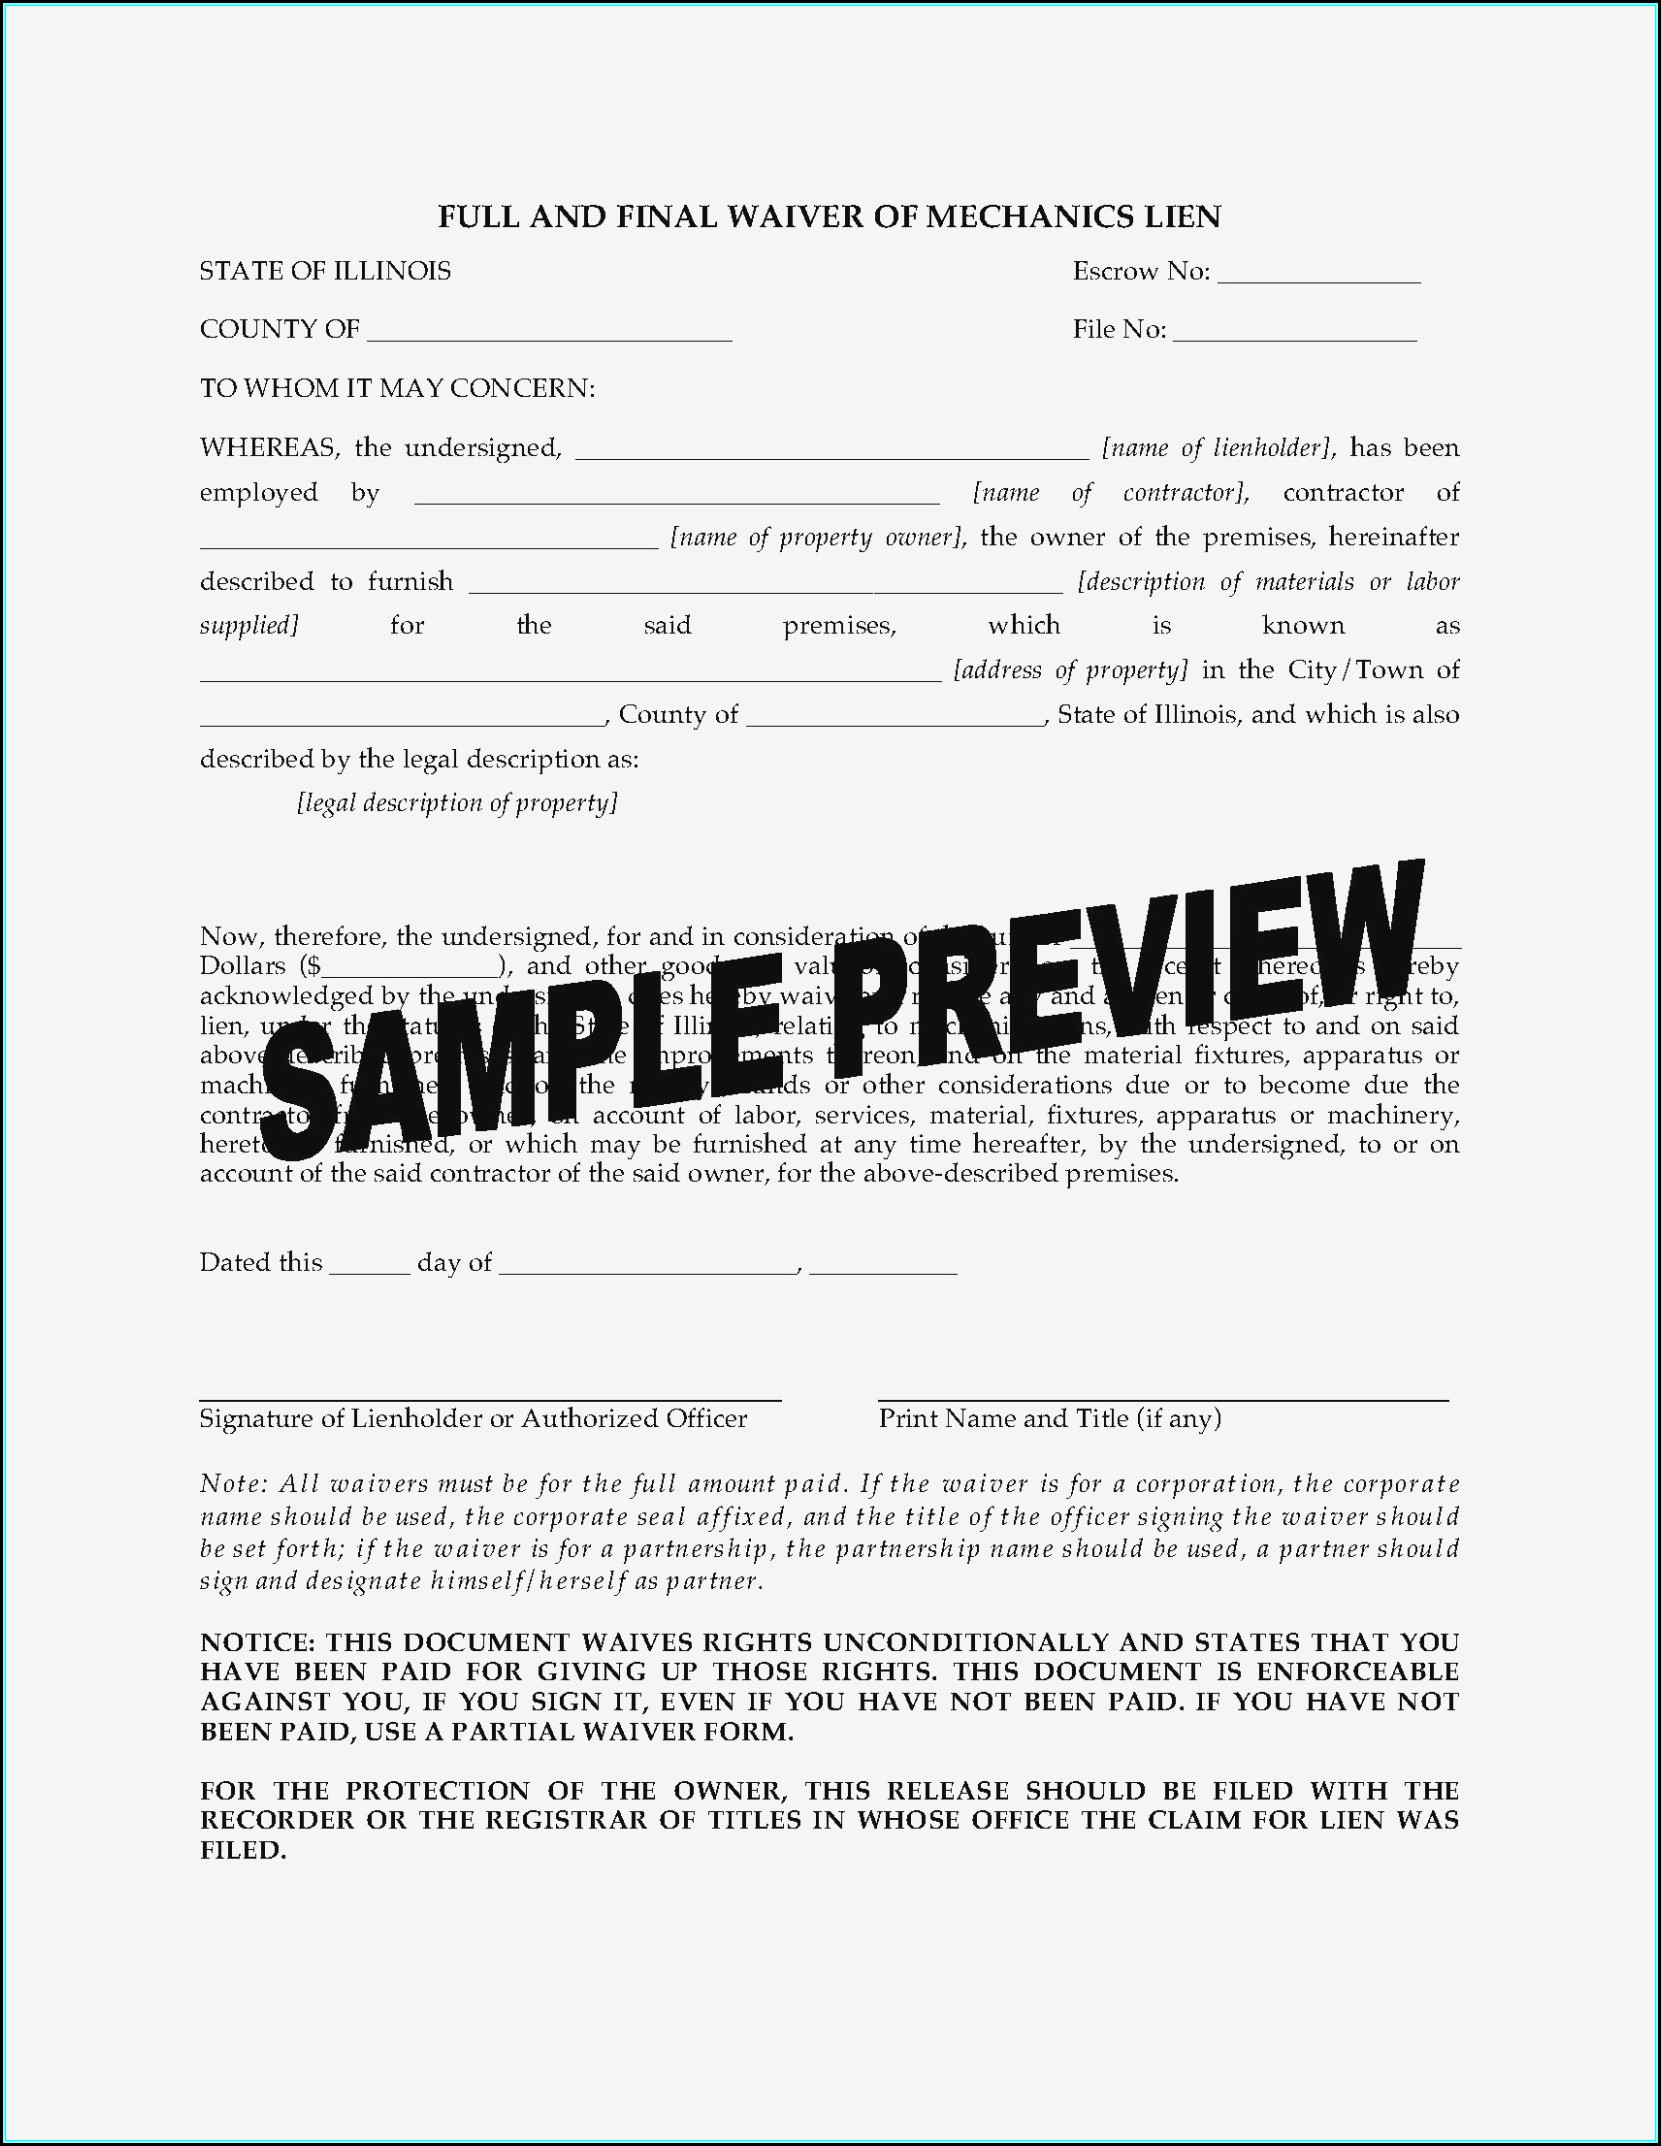 illinois-mechanics-lien-waiver-form Cover Letter Template Ymca on just basic, free pdf, google docs, microsoft office, sample email, to write,